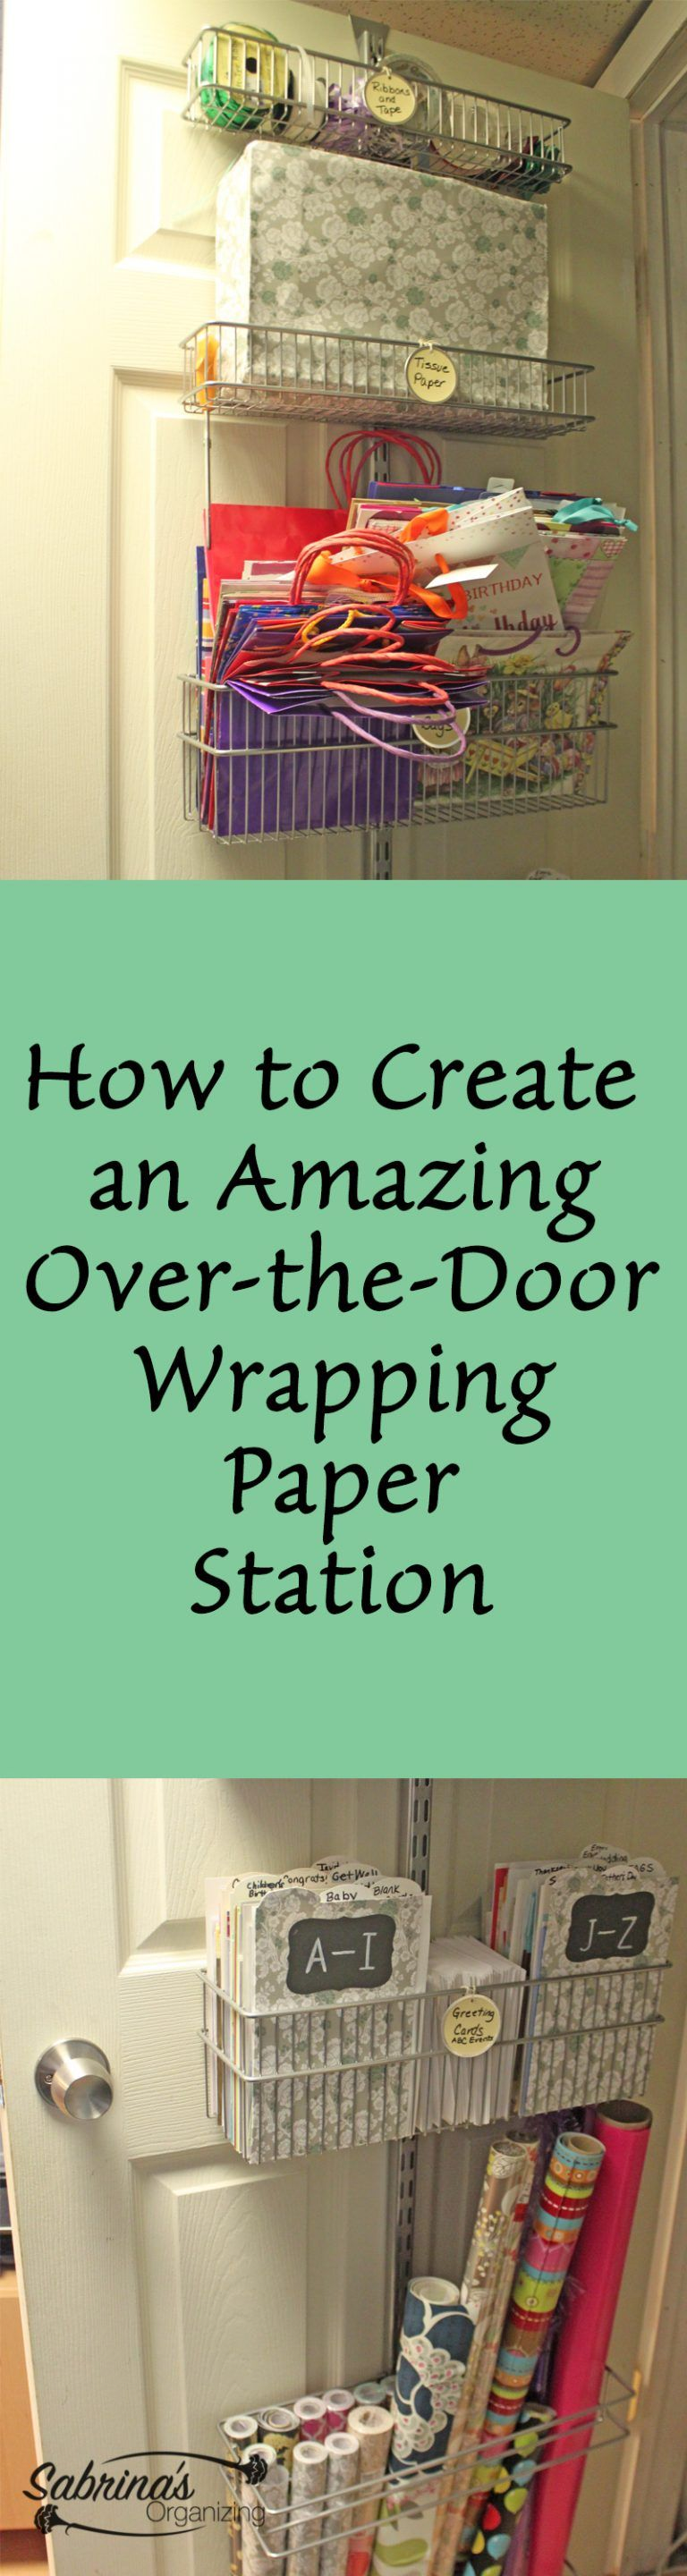 How To Create An Amazing Wrapping Paper Station   Step By Step Instructions  To Create This